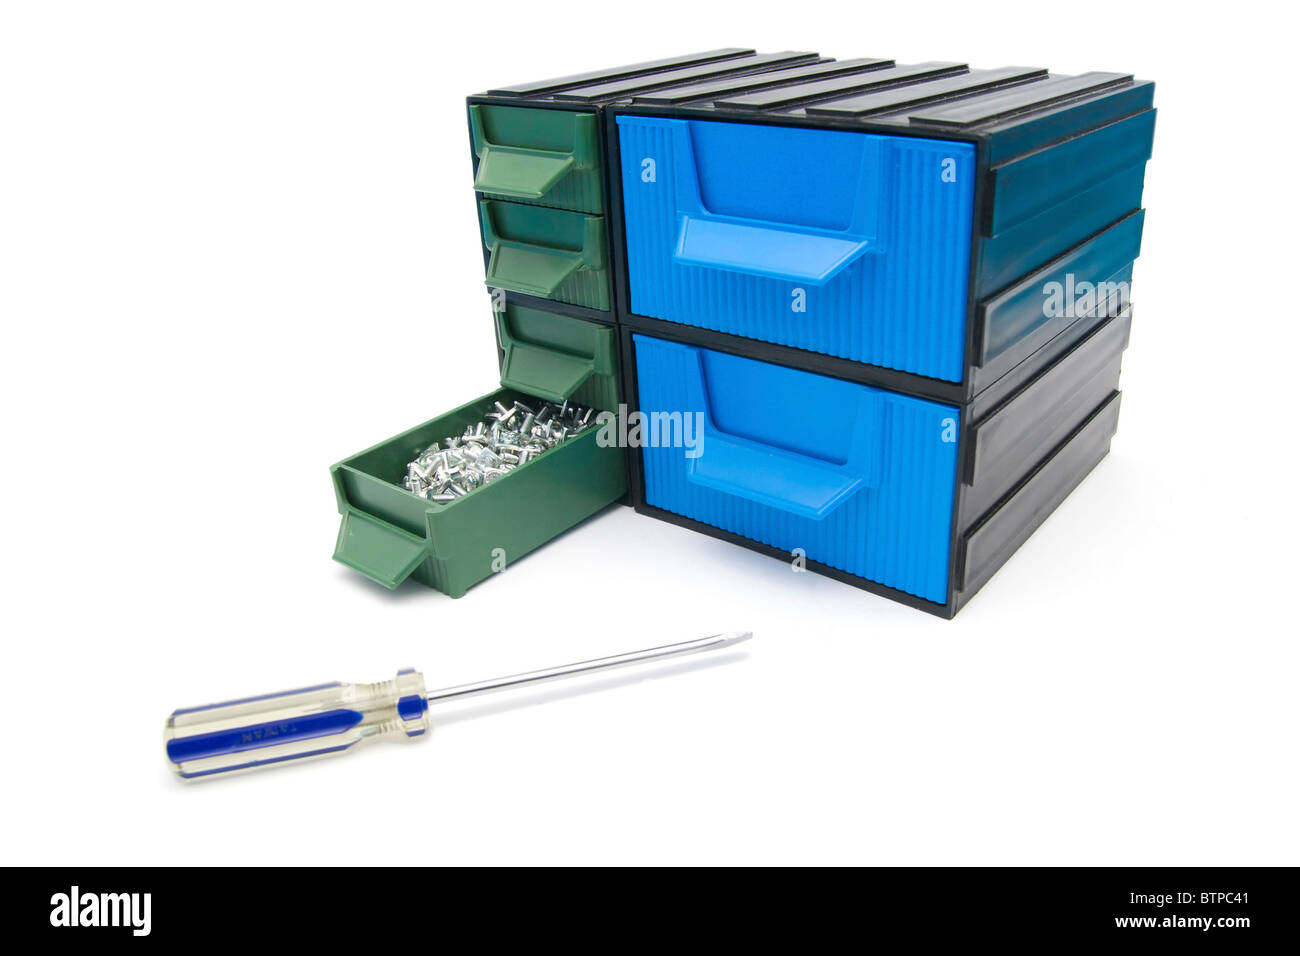 Screws box with drawers and screwdriver - Stock Image